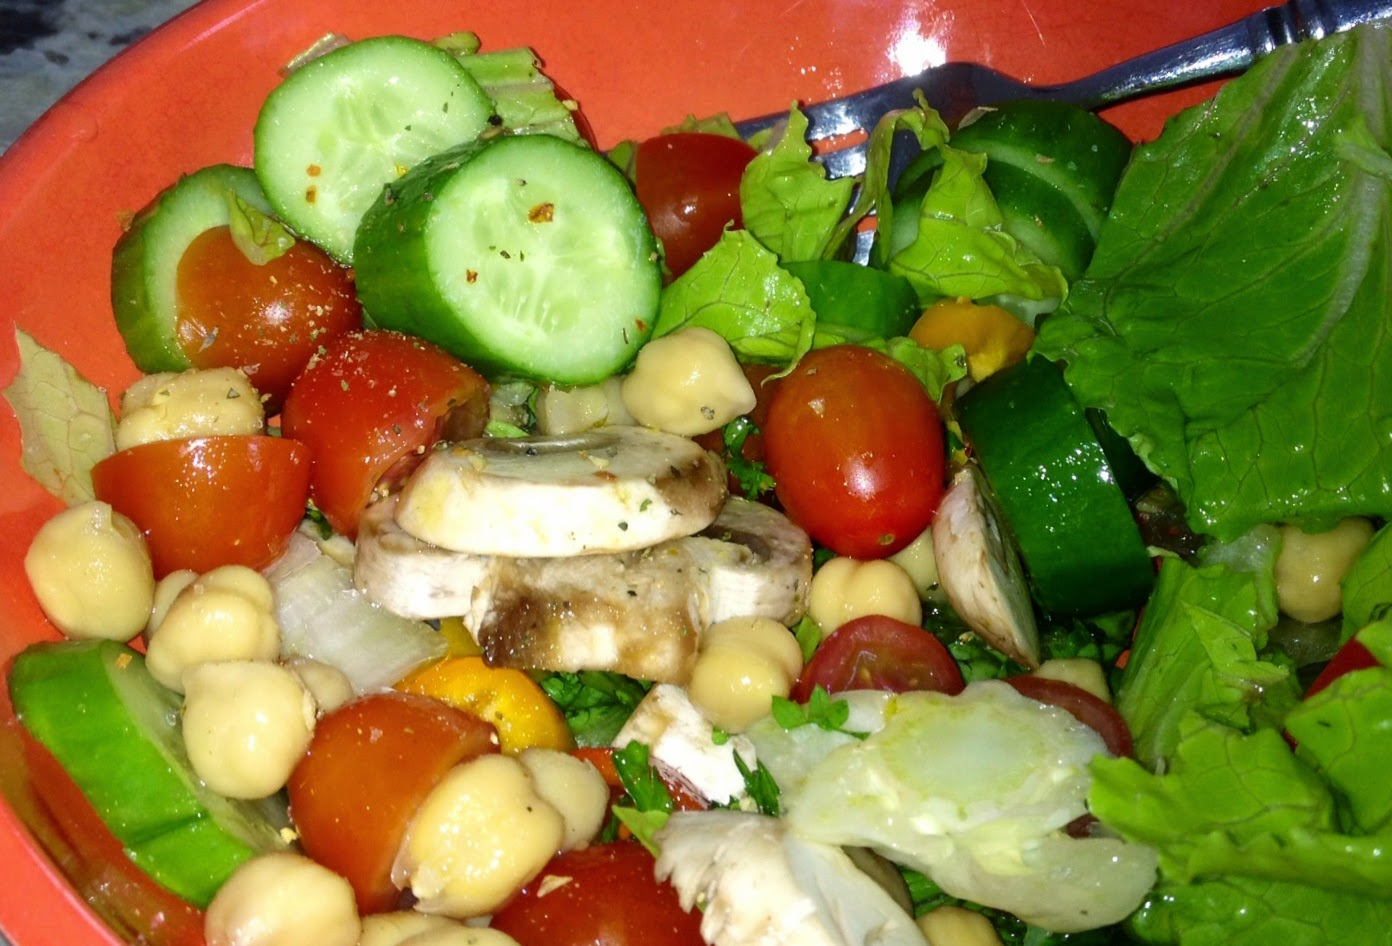 chunks of cut up cucumber, tomato, chick peas, lettuce